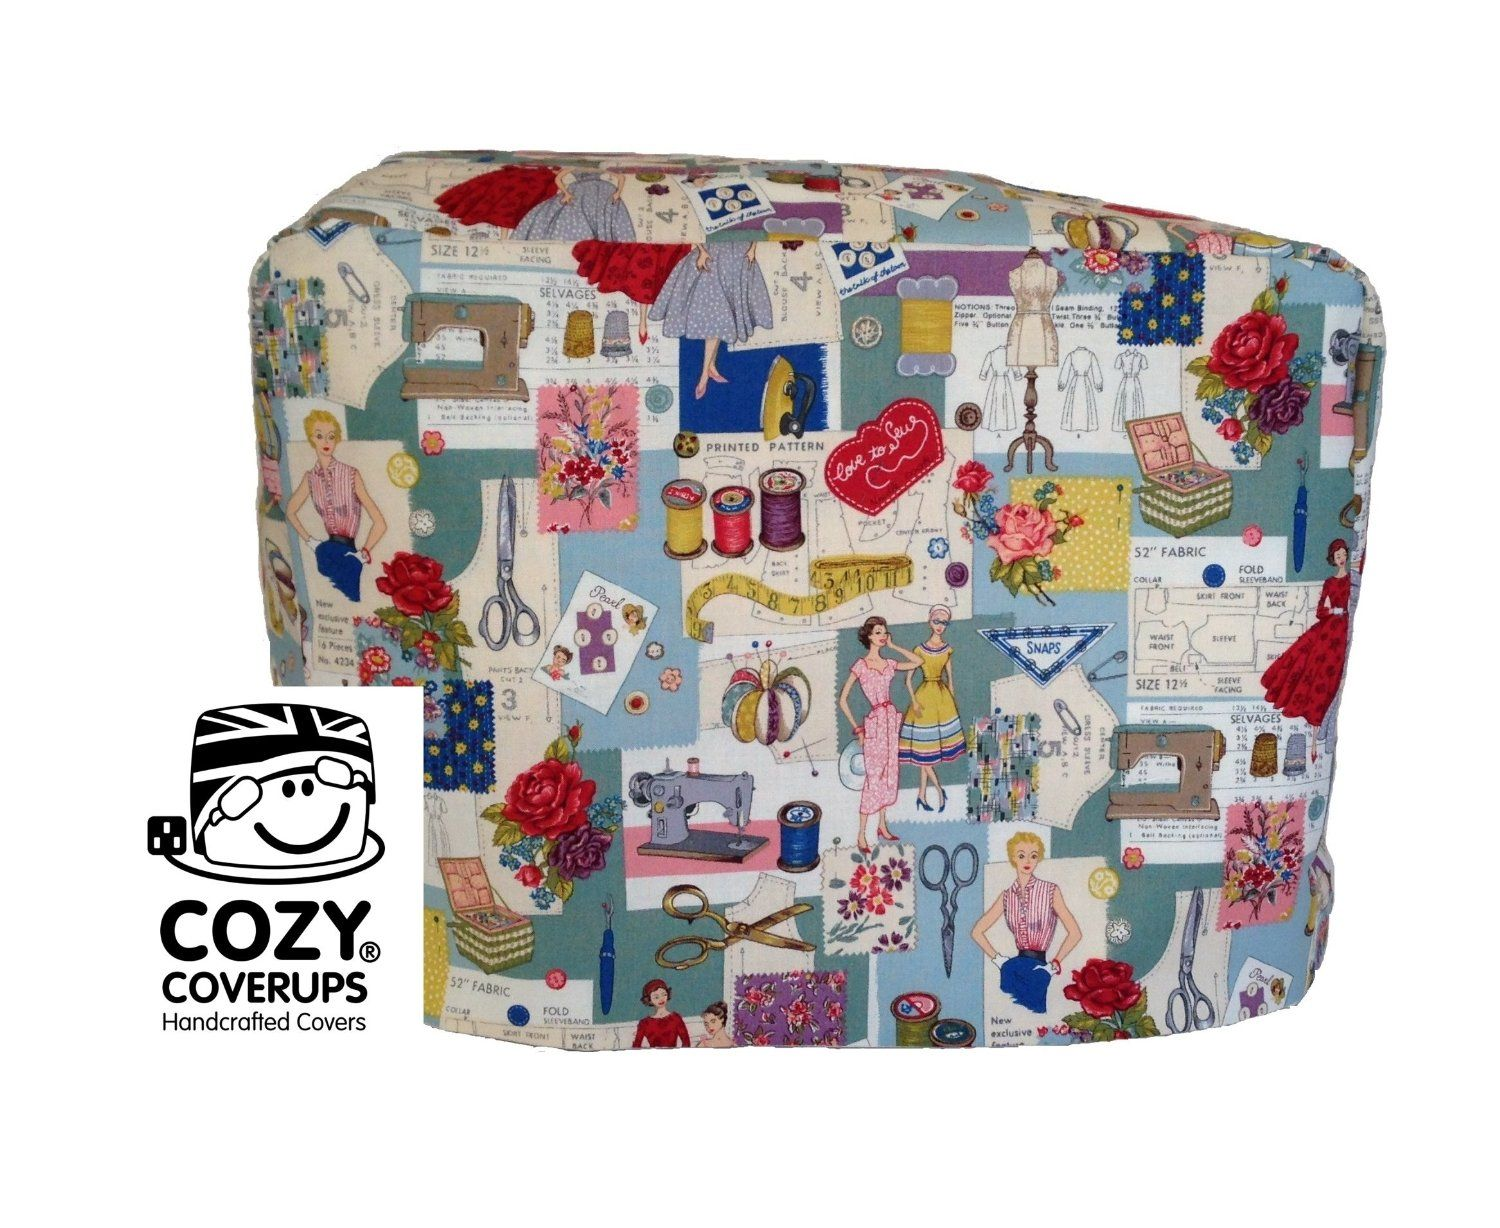 Amazon.com: Handmade Sewing Machine CozyCoverUp Dust Cover in 50\'s ...